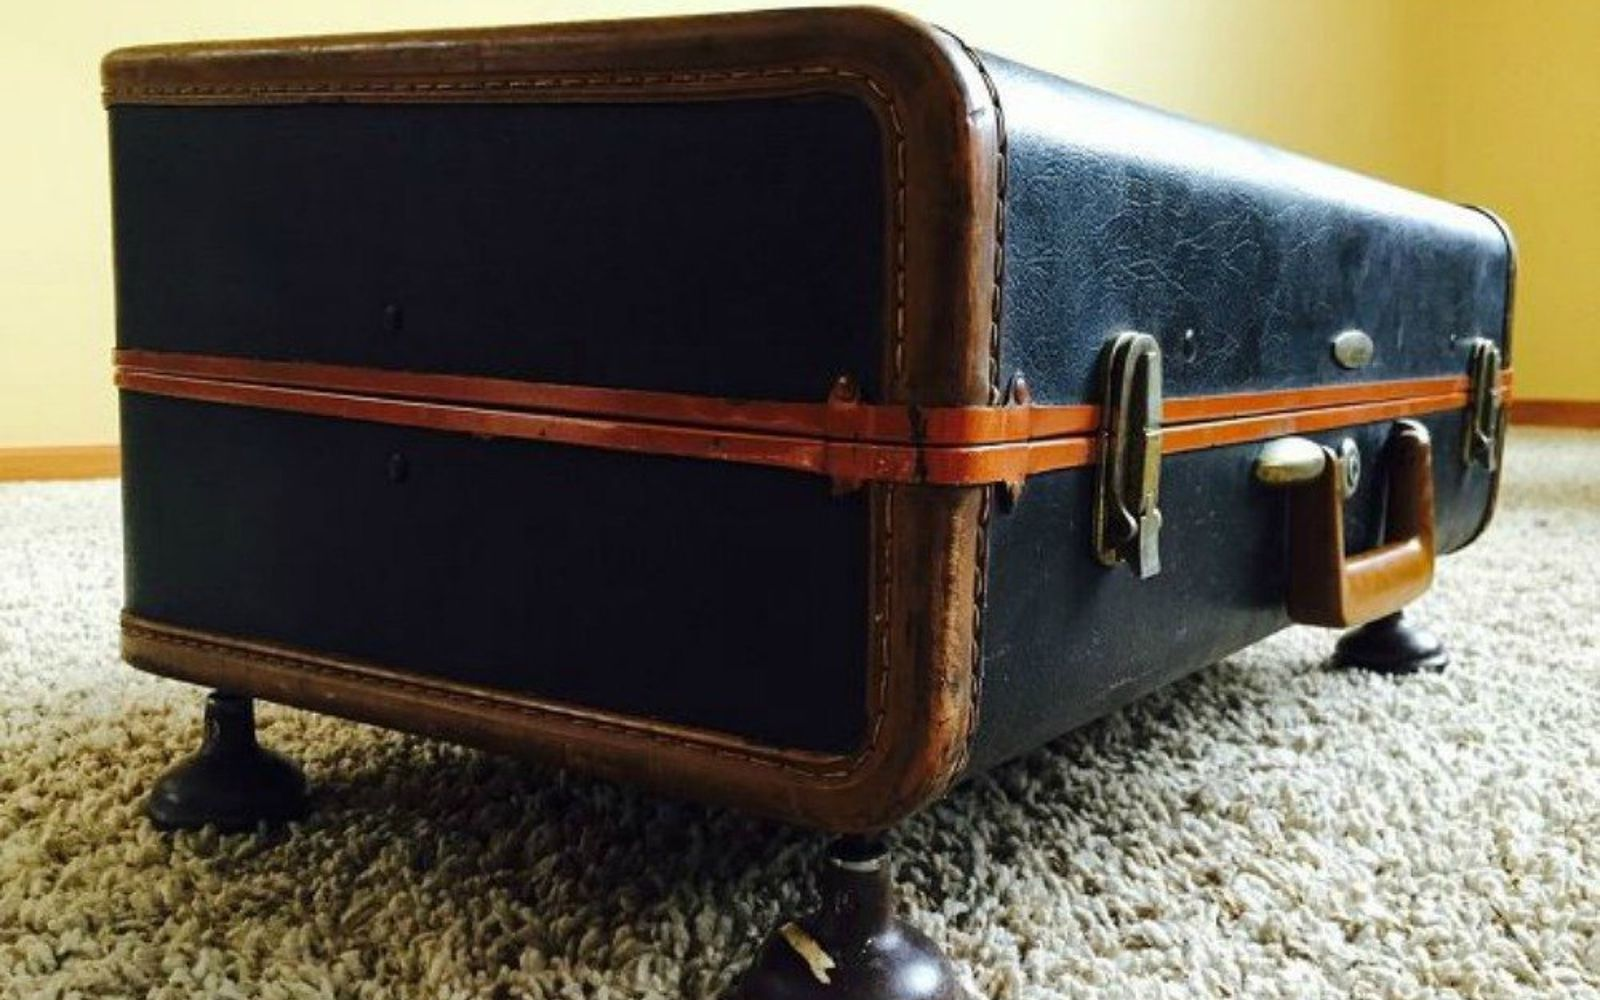 s don t throw out your old suitcase before you see these 15 clever ideas, Turn it into an adorable little ottoman